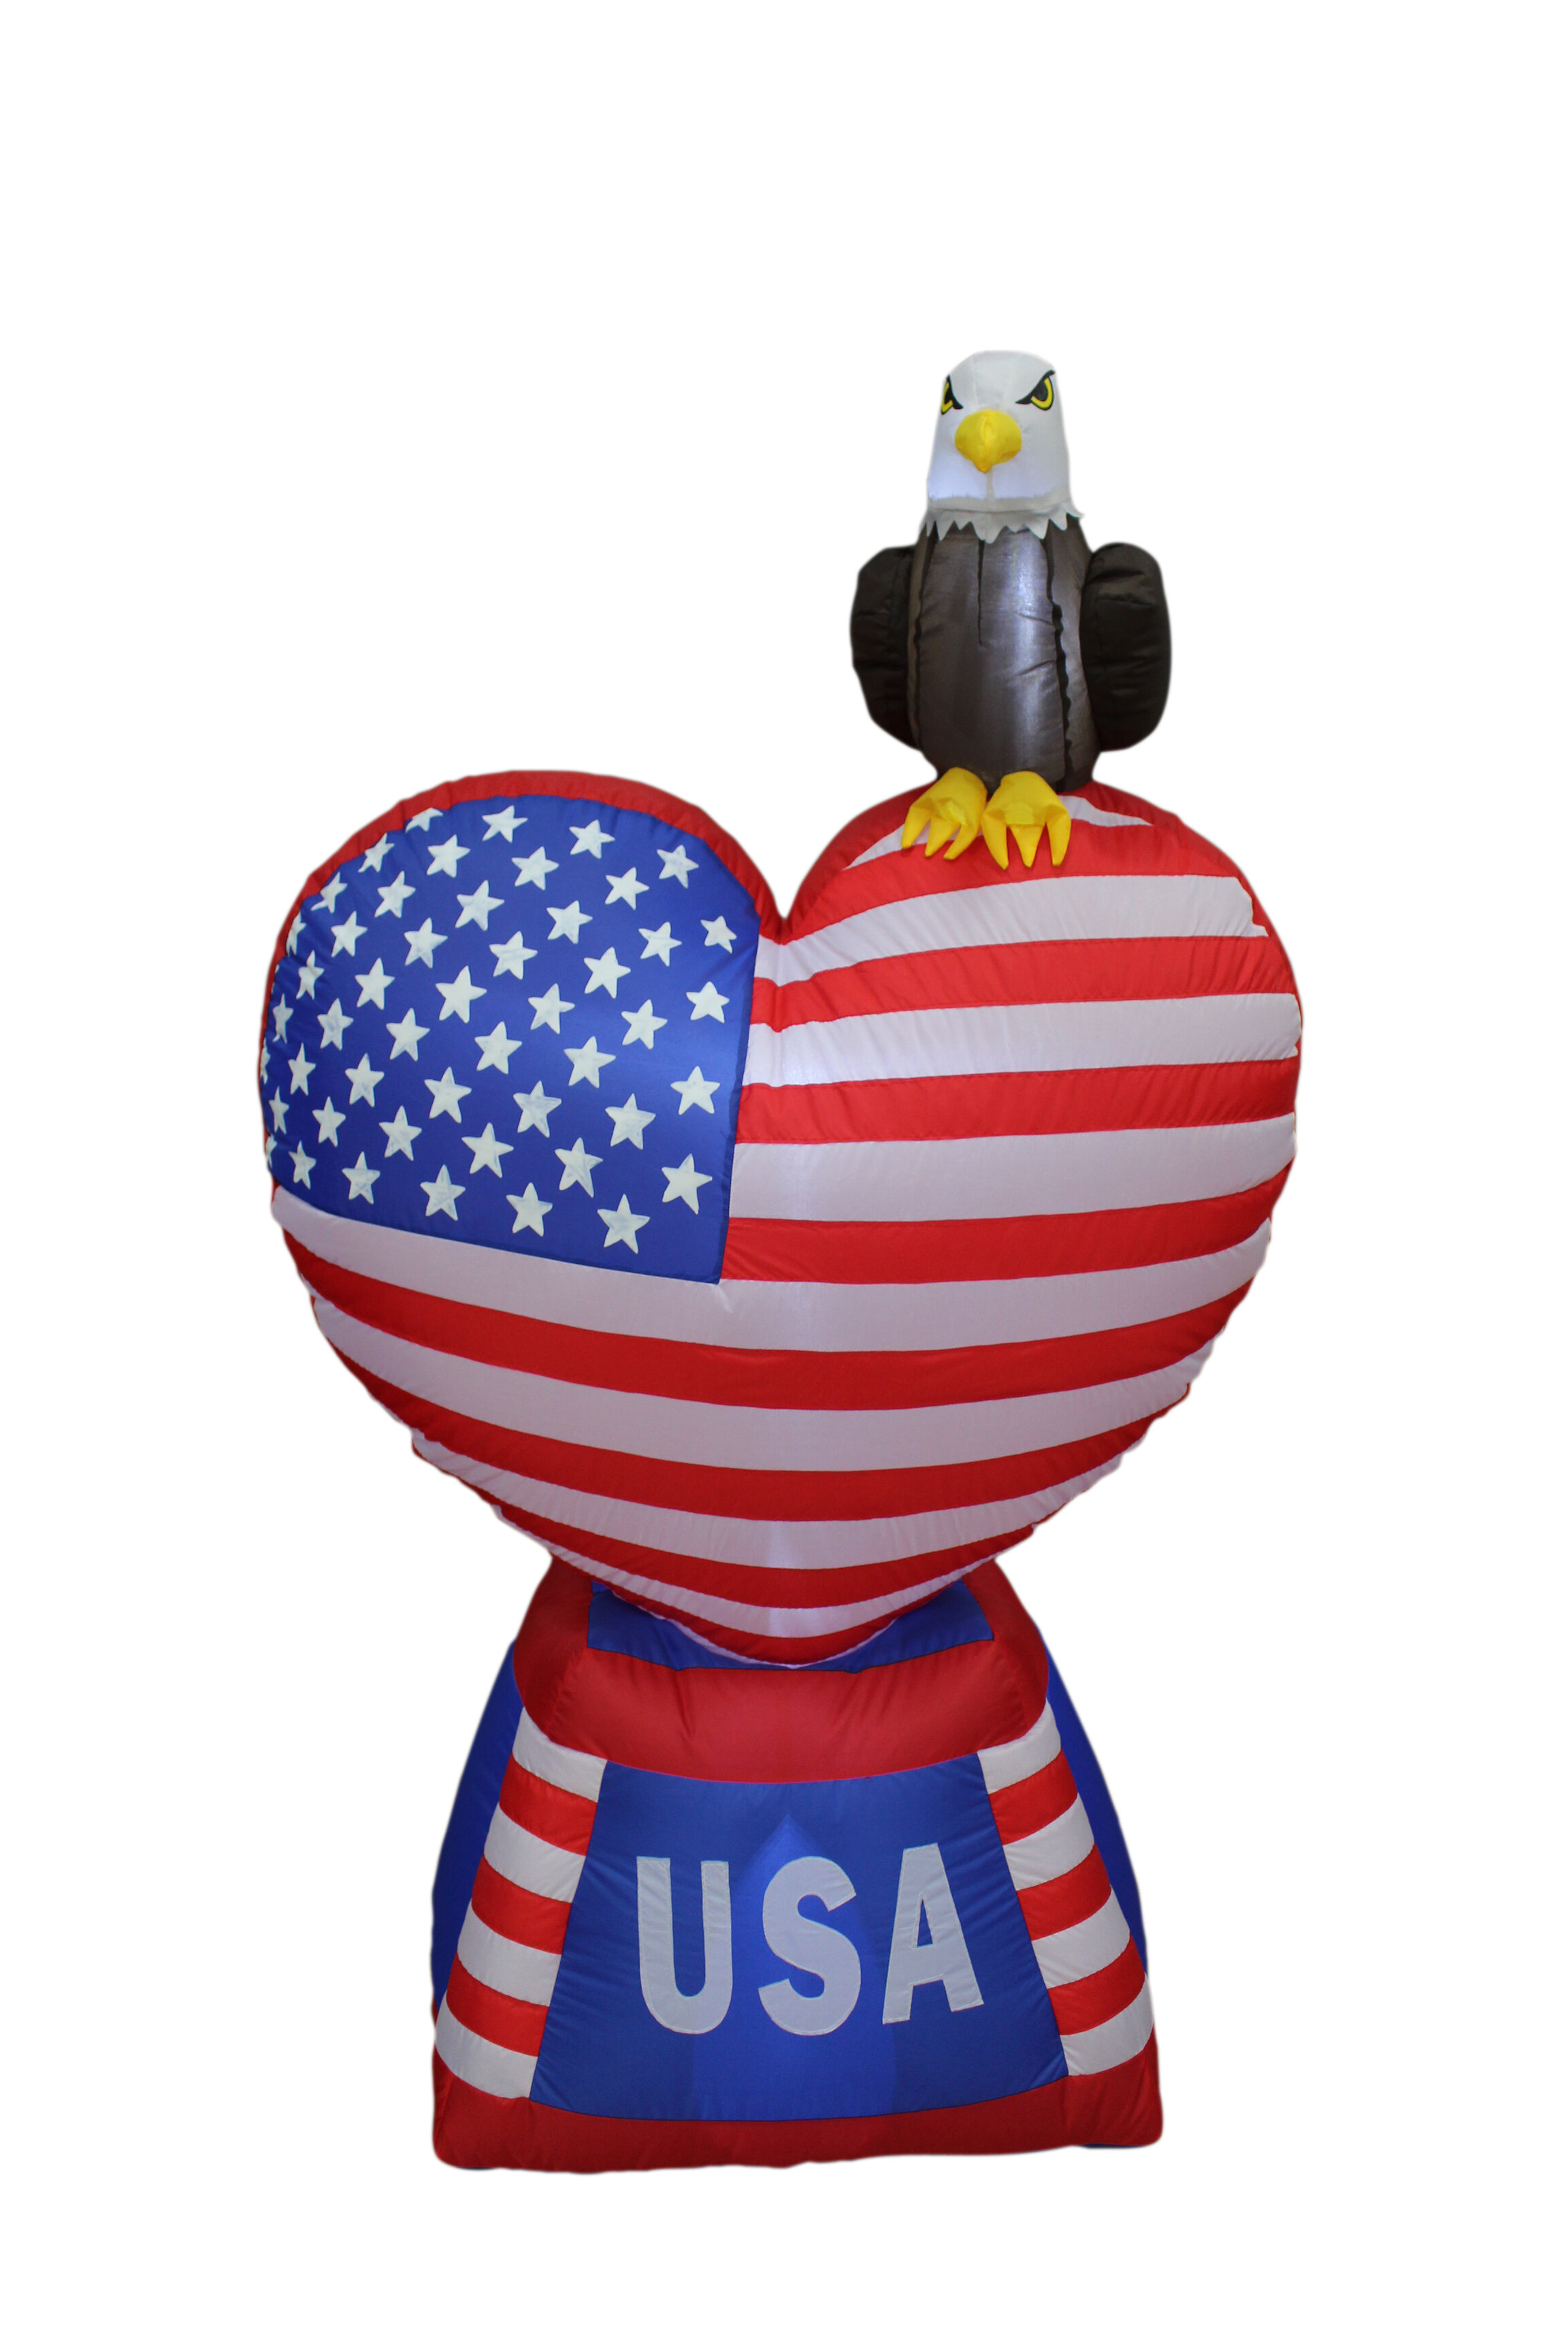 61b22c696035b BZB Goods Patriotic Independence Day Inflatable Heart with American Flag  and Eagle Yard Decoration   Reviews